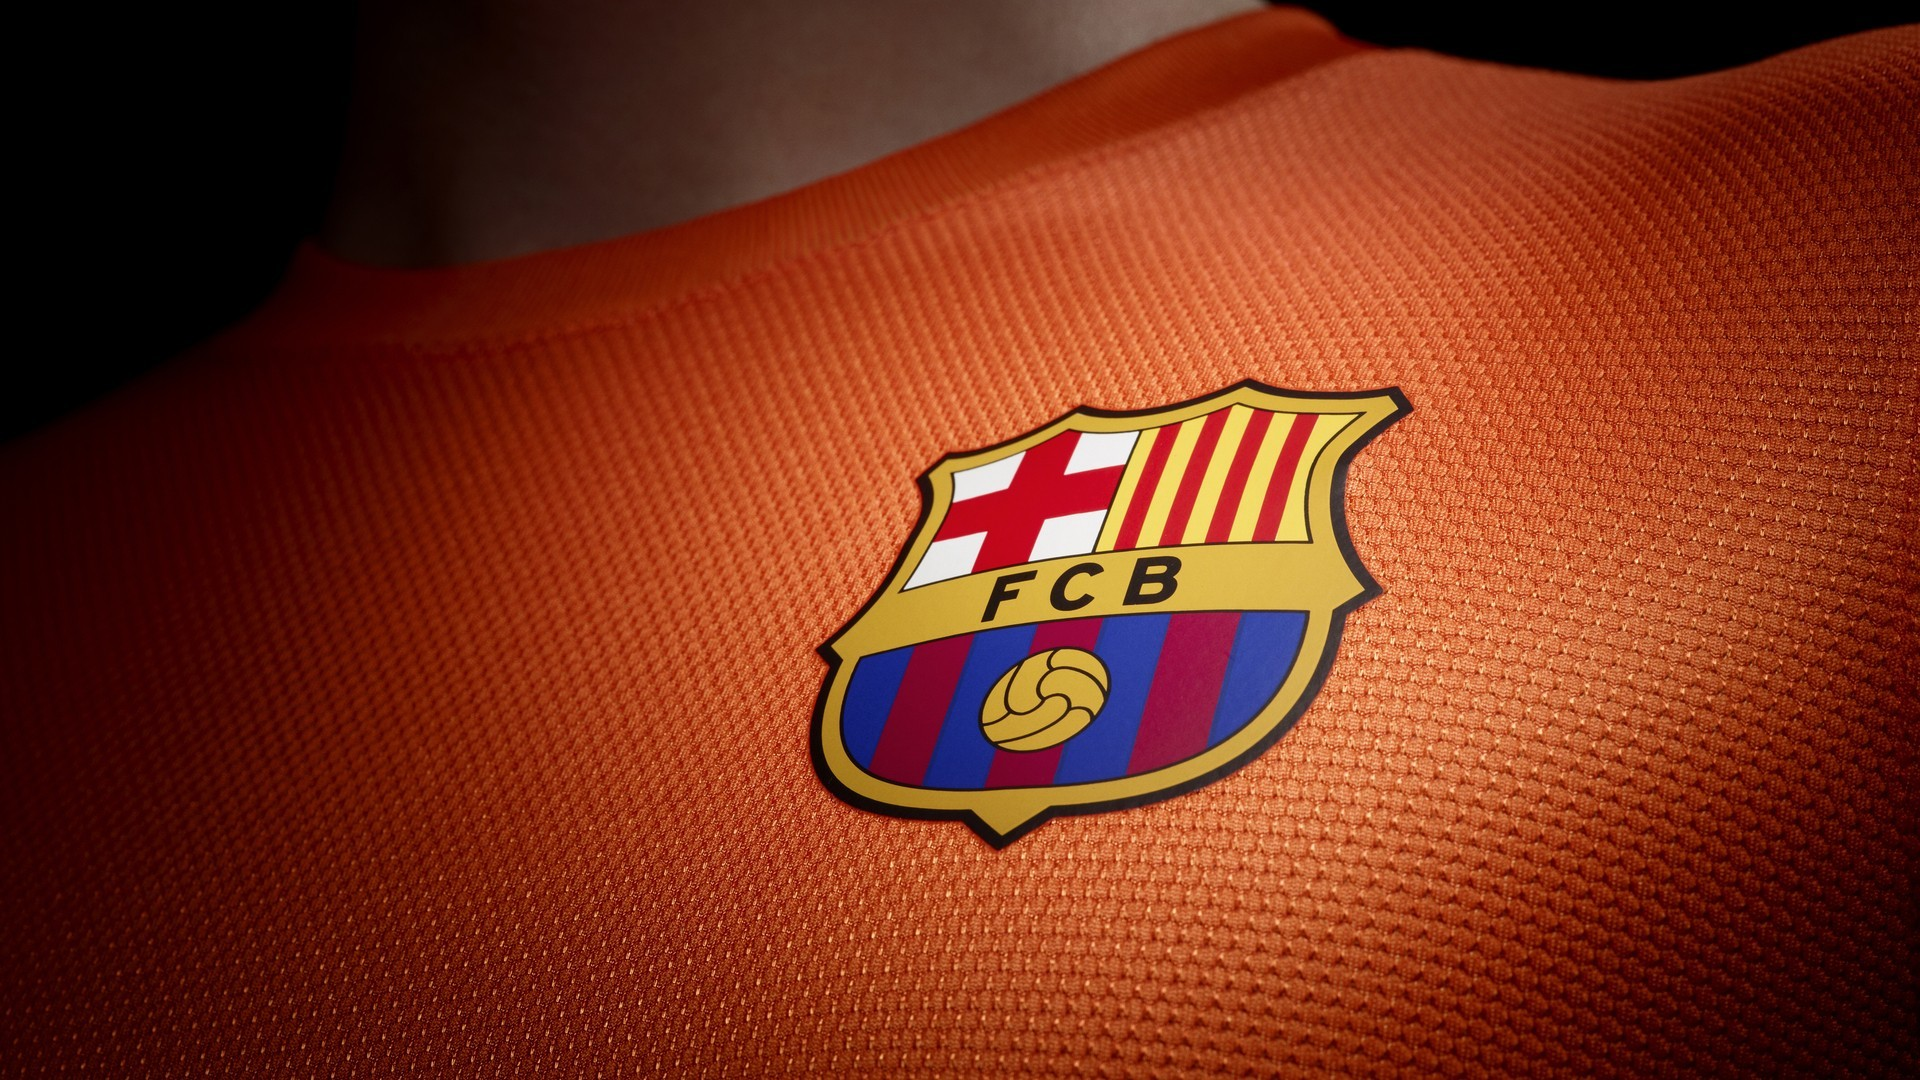 1920x1080 Barcelona Wallpaper Logo Away jersey.